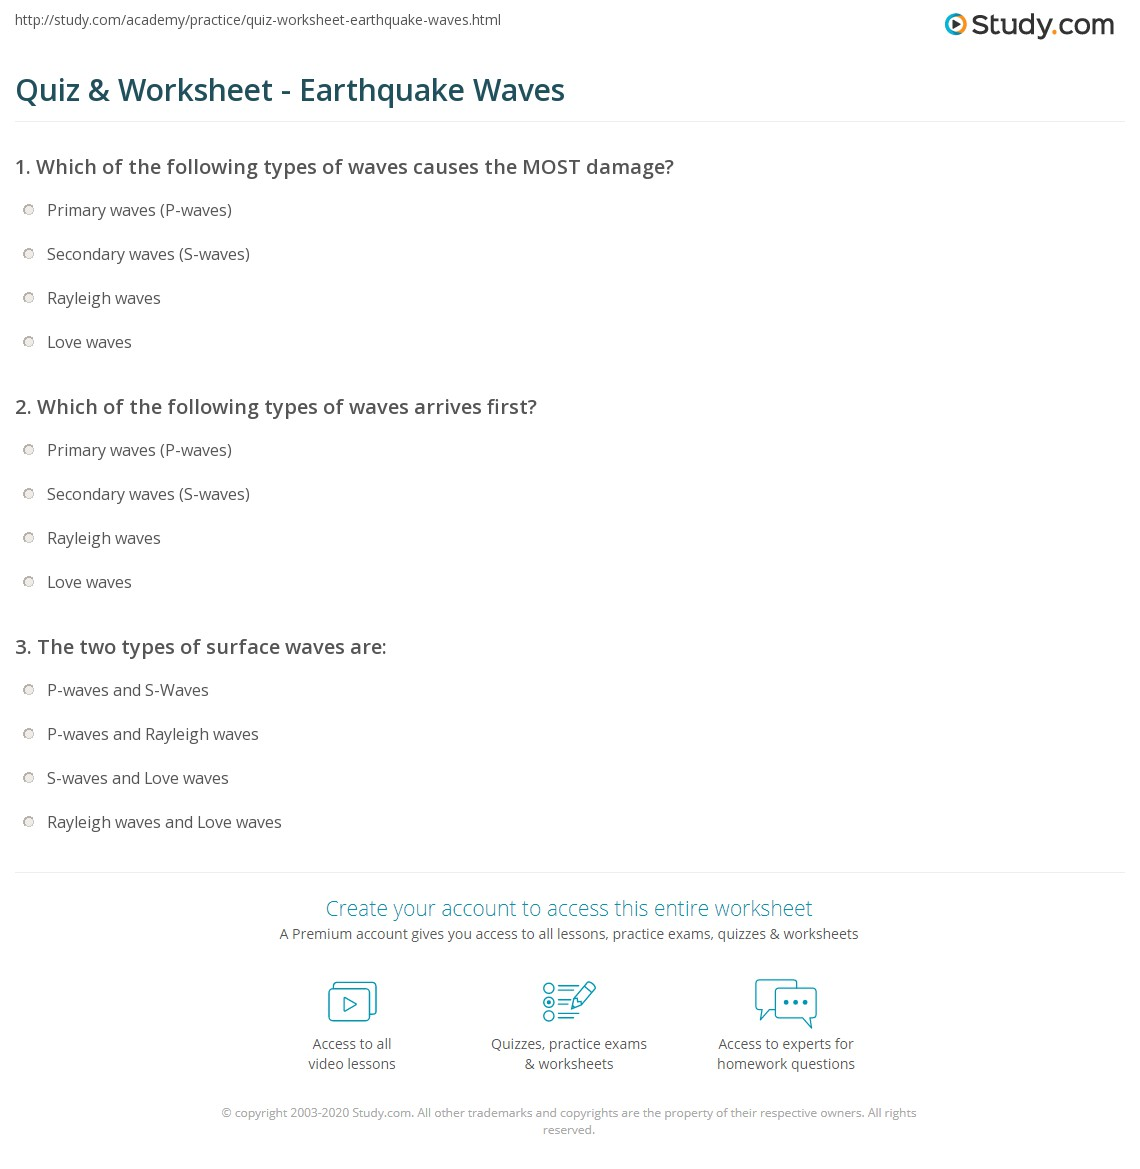 Earthquakes And Seismic Waves Worksheet – Fundamental Counting Principle Worksheet